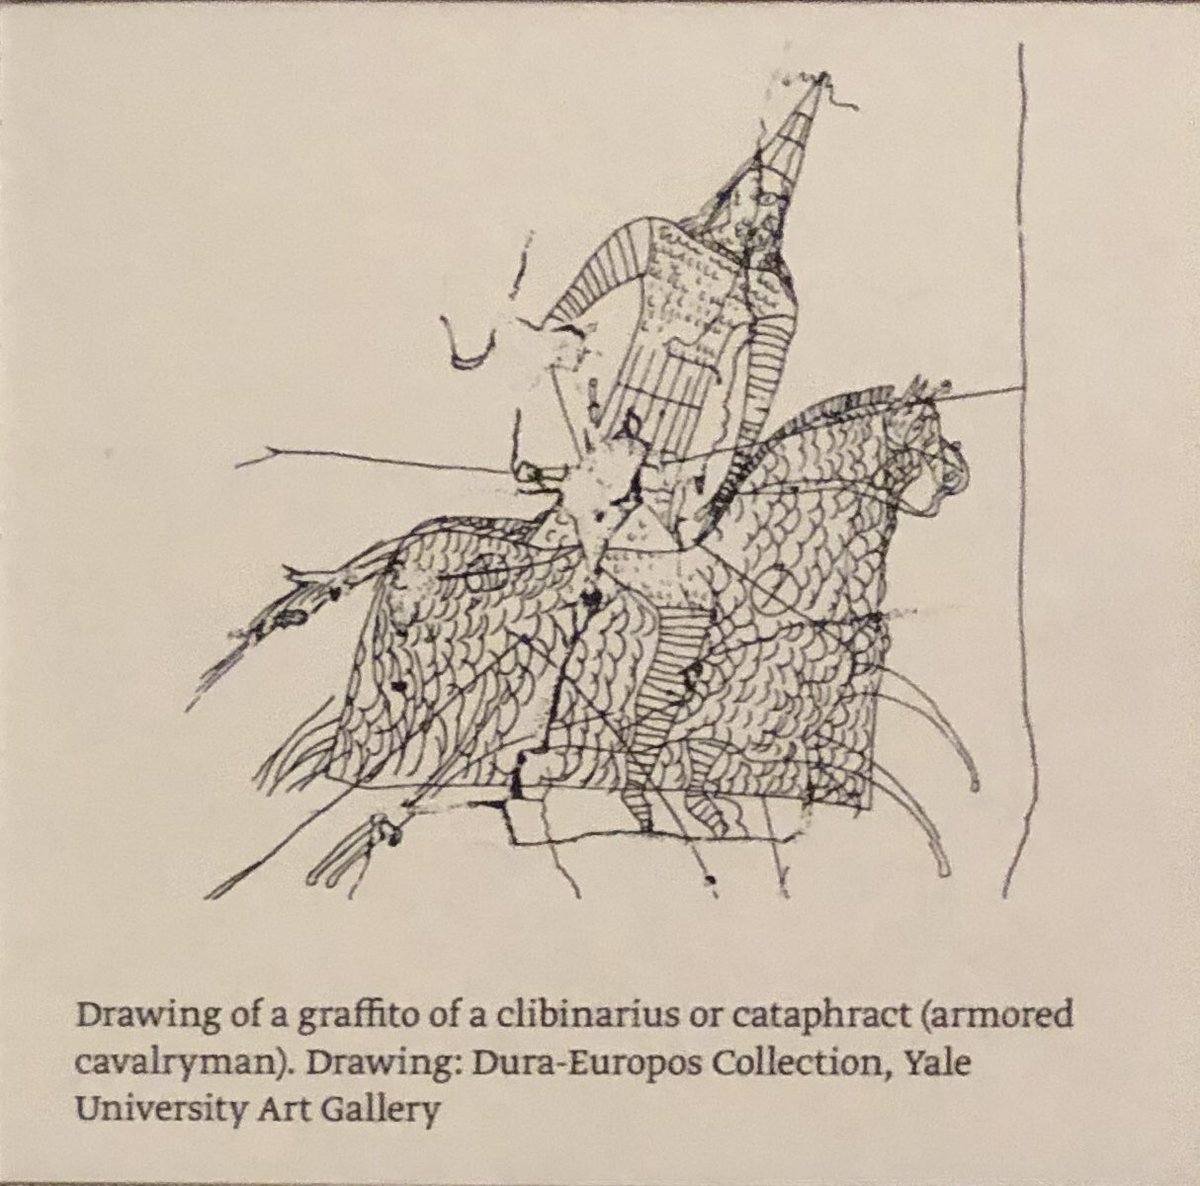 Alison Fisk On Twitter War Horses Iron Horse Armour Ad 165 256 And Sketch Of A Wall Graffito Both From Dura Europos Displayed Yaleartgallery Museumsunlocked Https T Co T7l52zd0f3